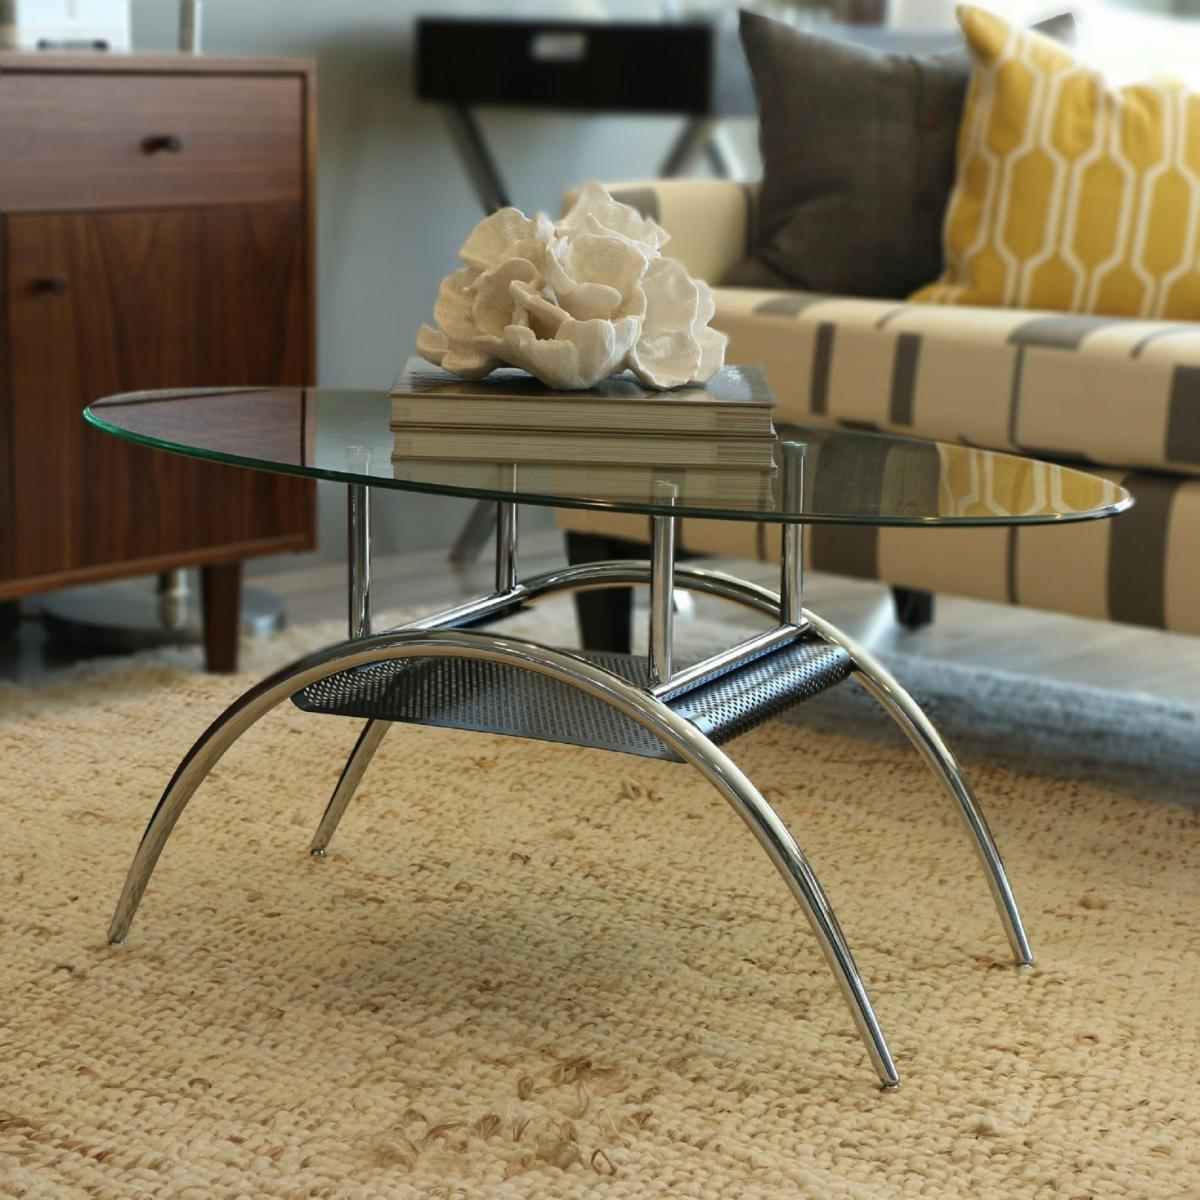 NEW Stylish Oval Shaped Tempered Safety Glass Coffee Table Chrome